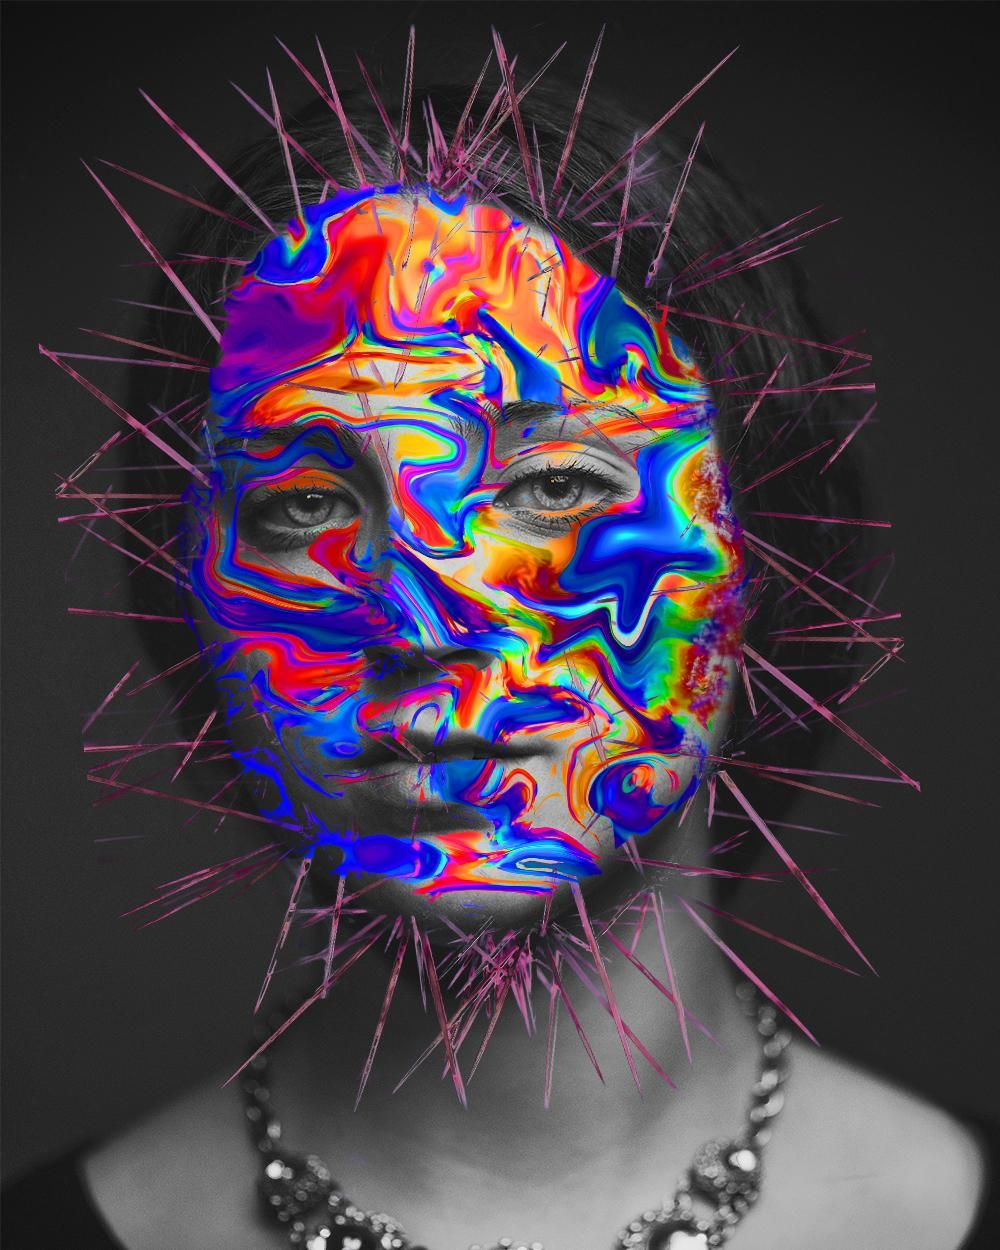 Psychedelic cactus girl - image 1 - student project